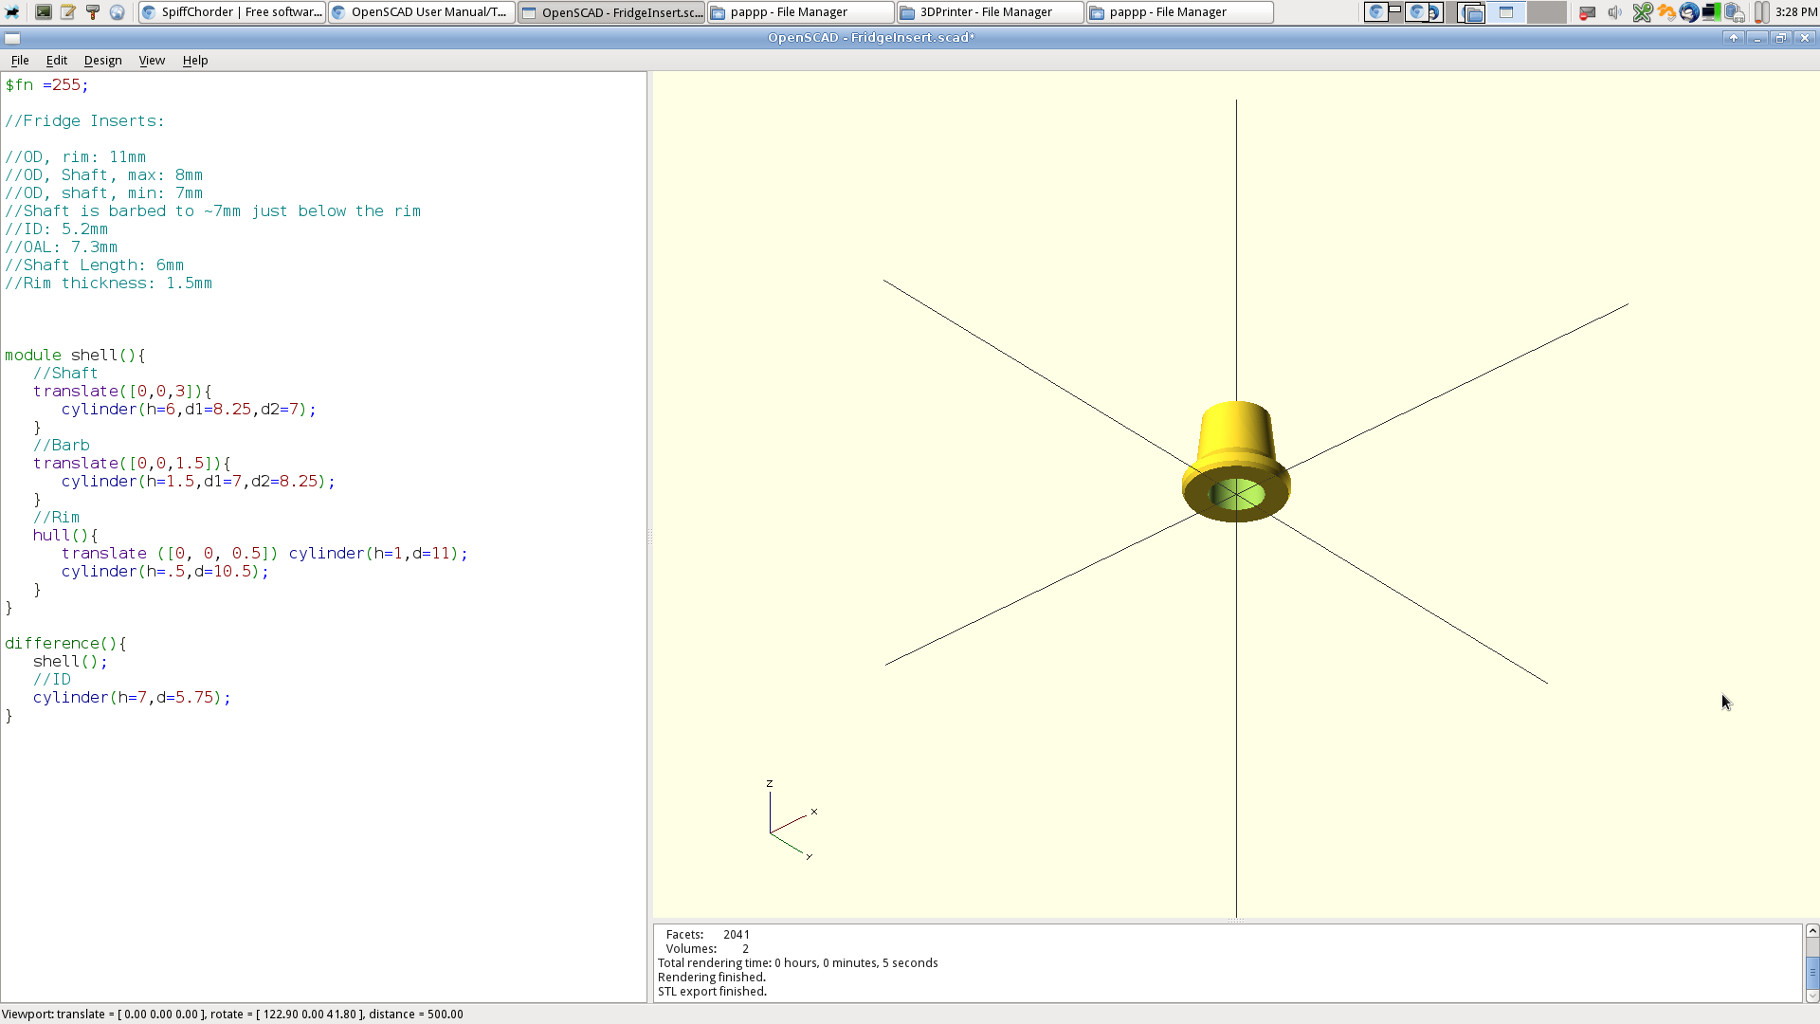 Grab some calipers and describe the bushings to OpenSCAD.